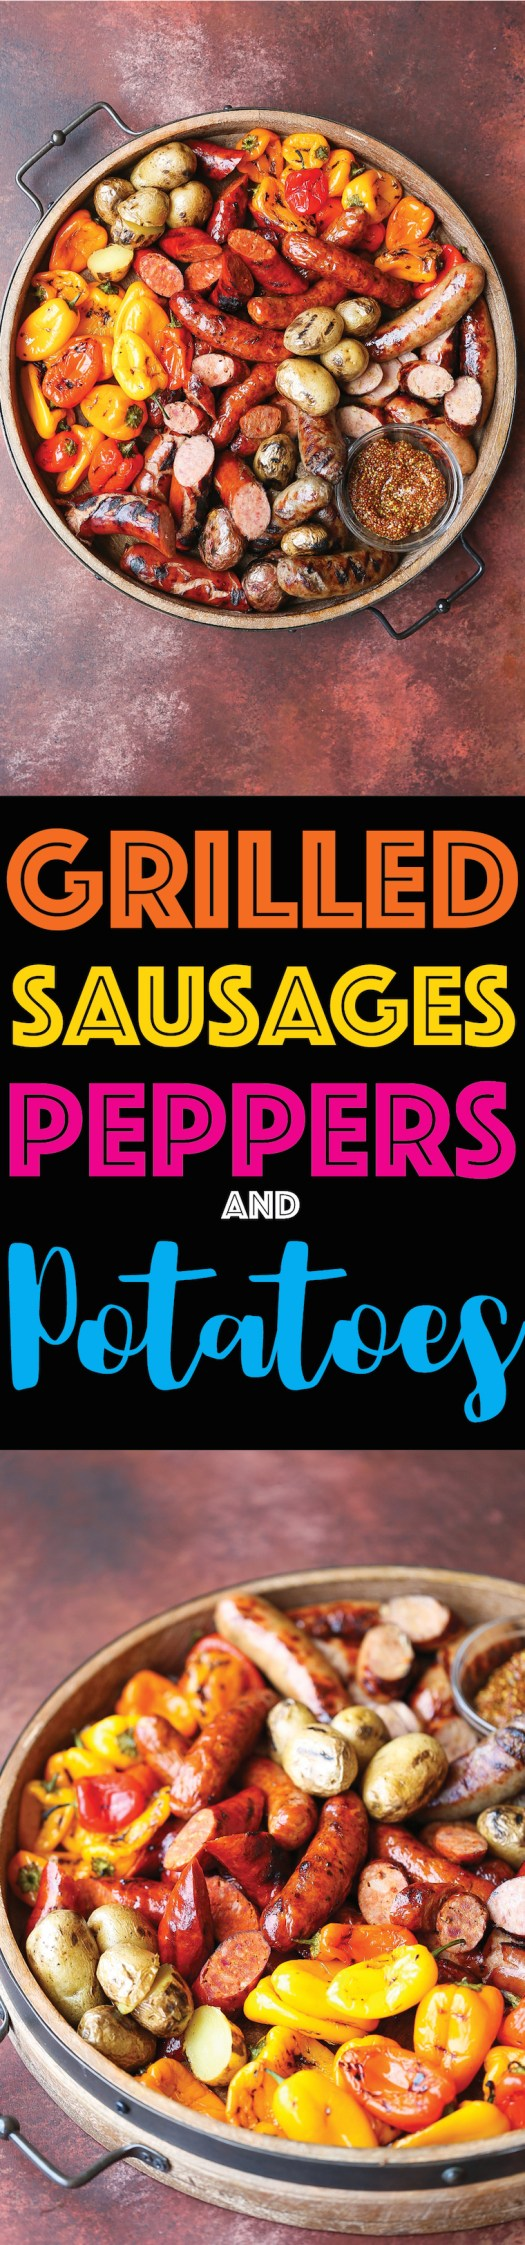 Grilled Sausages, Peppers and Potatoes - The most amazing grilled sausage platter for your next potluck or BBQ! This is easy to prepare and so impressive!